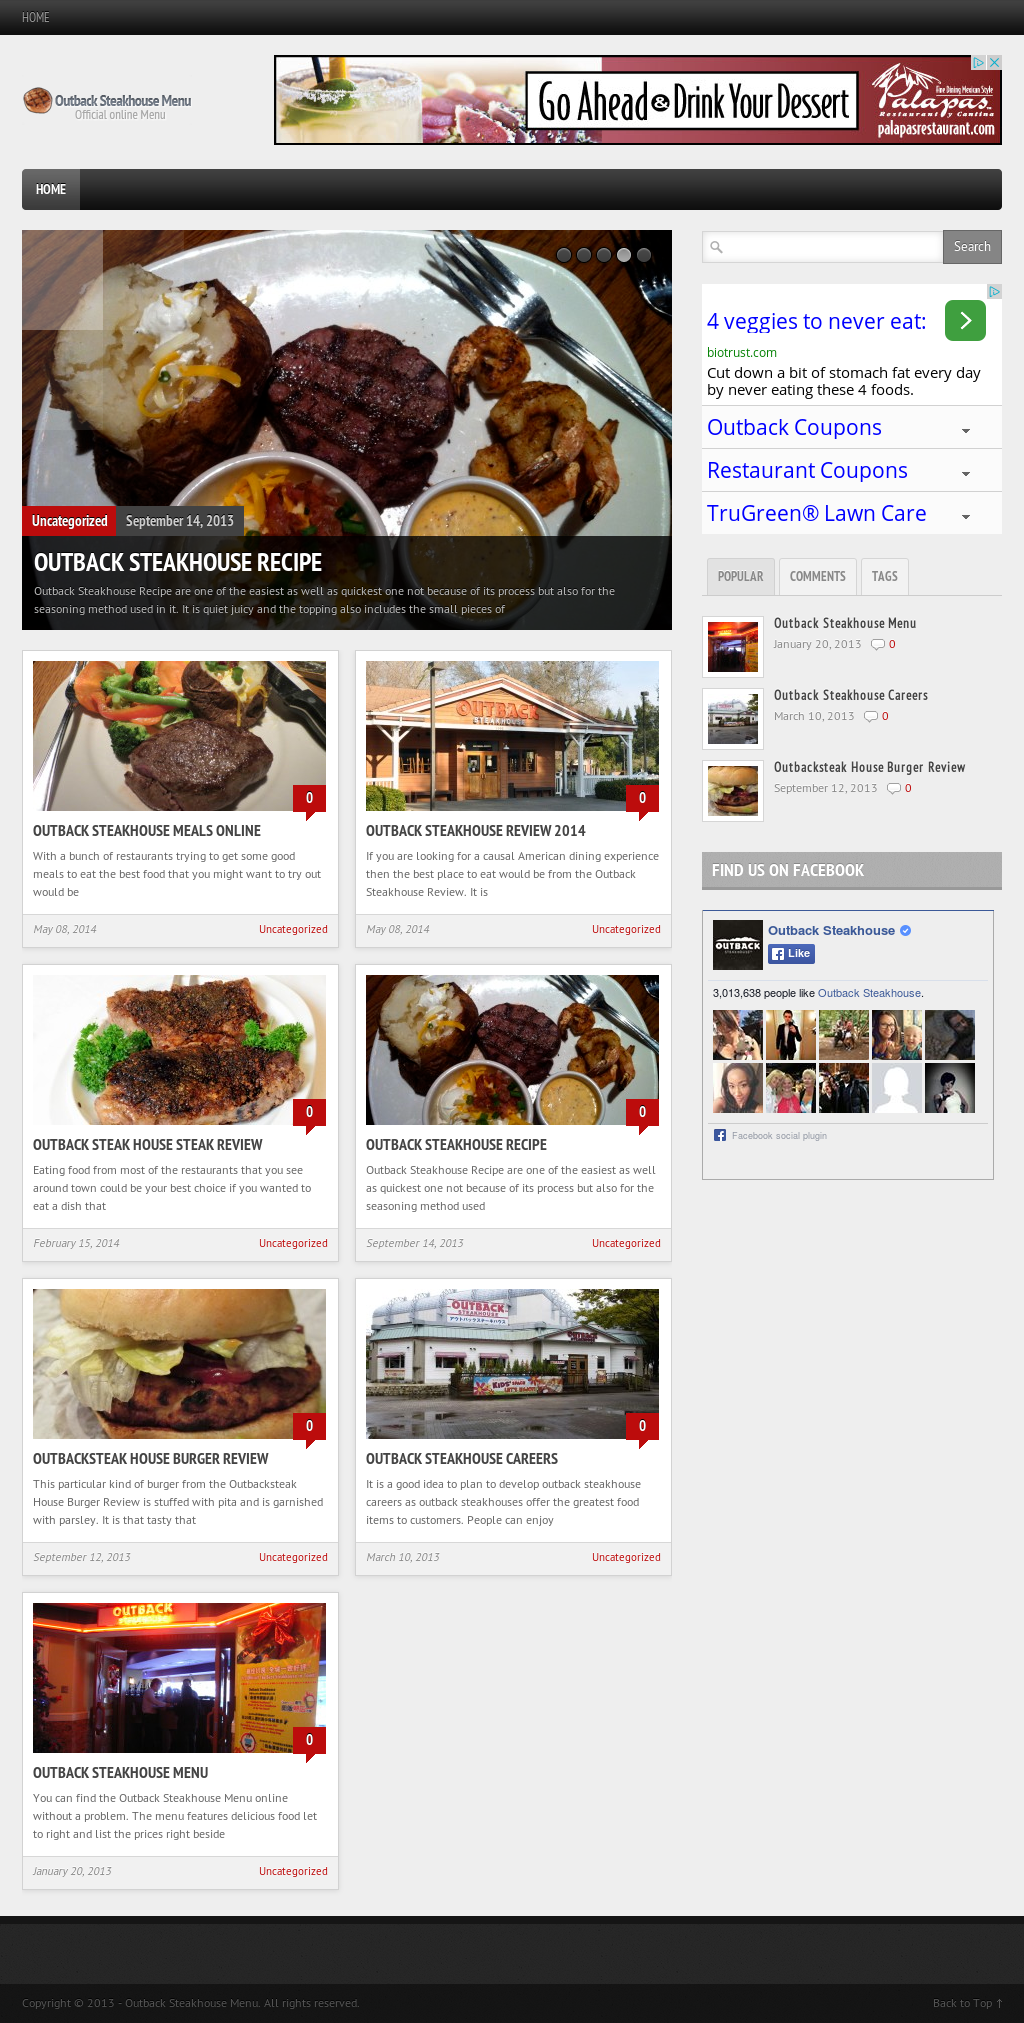 Outback Steakhouse Menu Competitors, Revenue and Employees - Owler ...